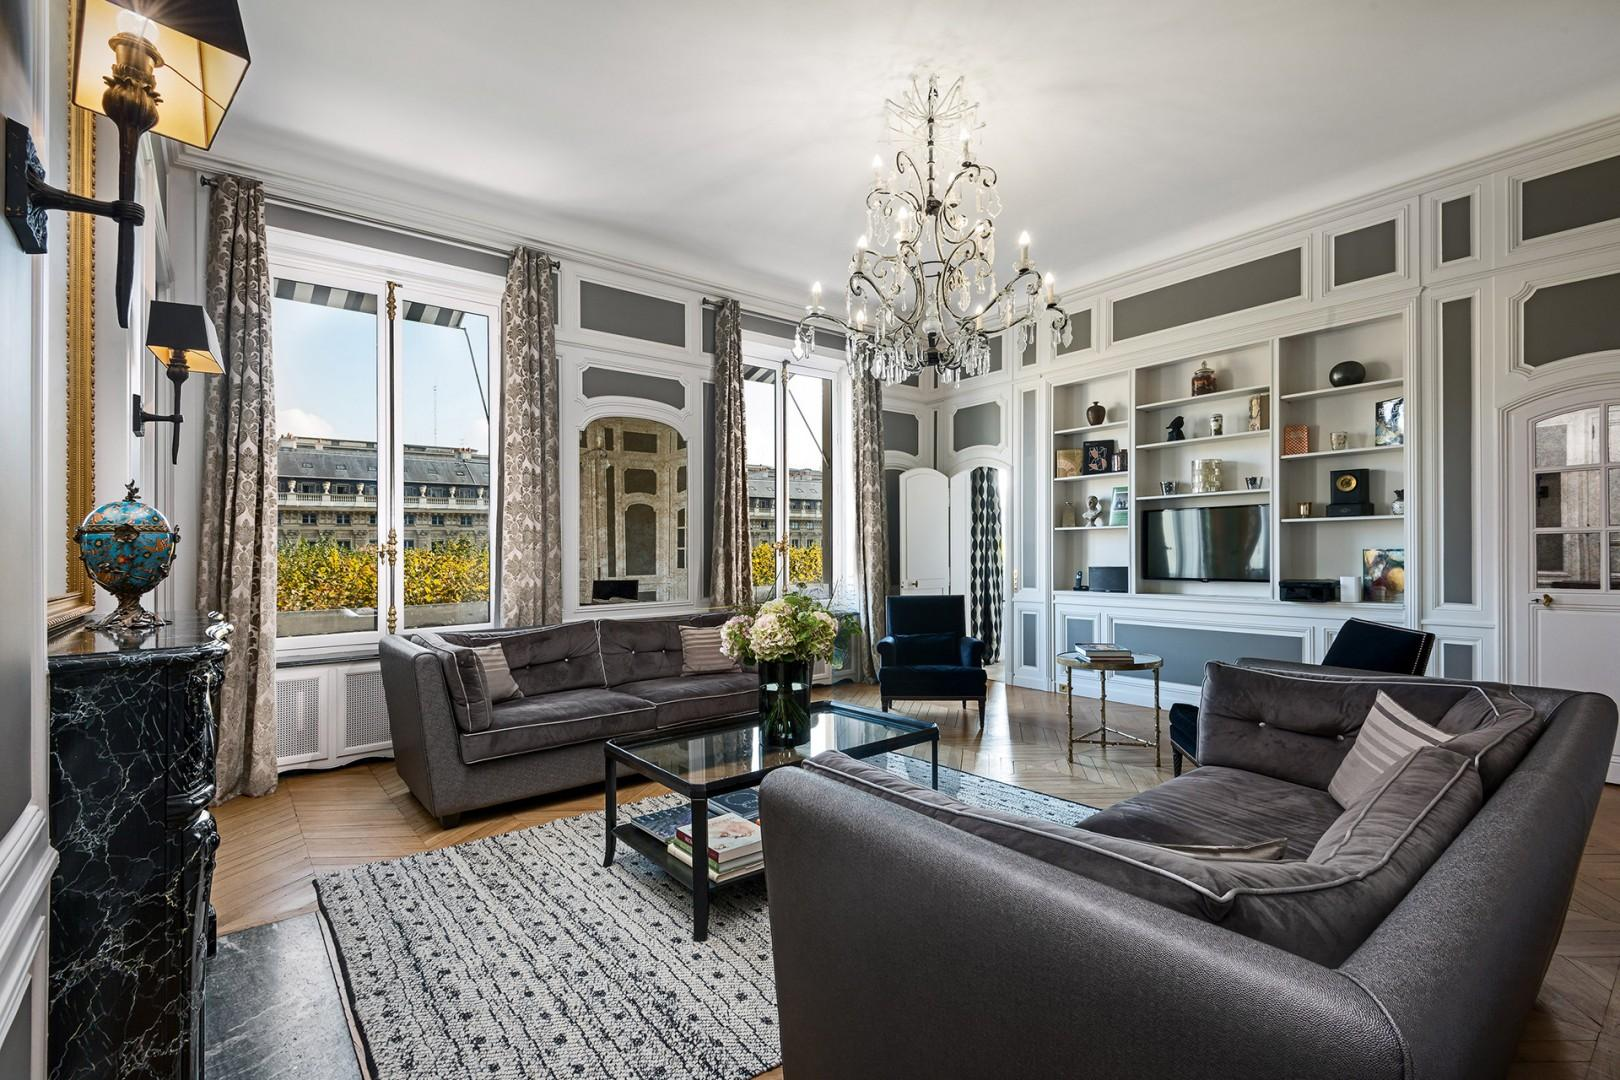 Welcome to the exquisite Chopine rental inside the iconic Palais-Royal!